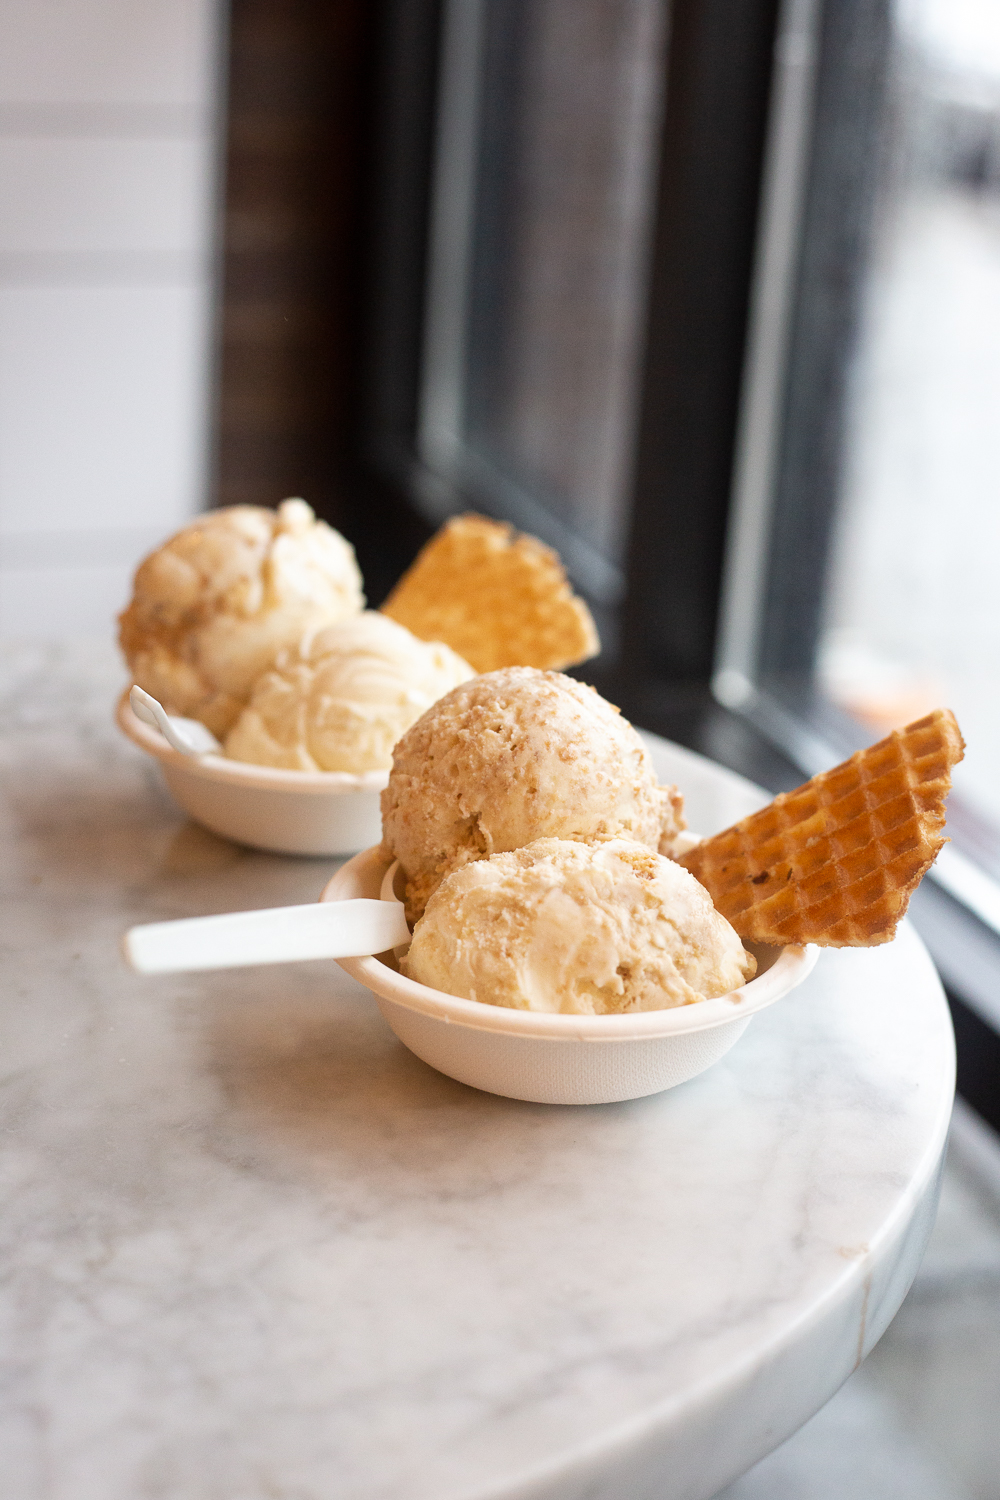 jenisicecream-102.jpg